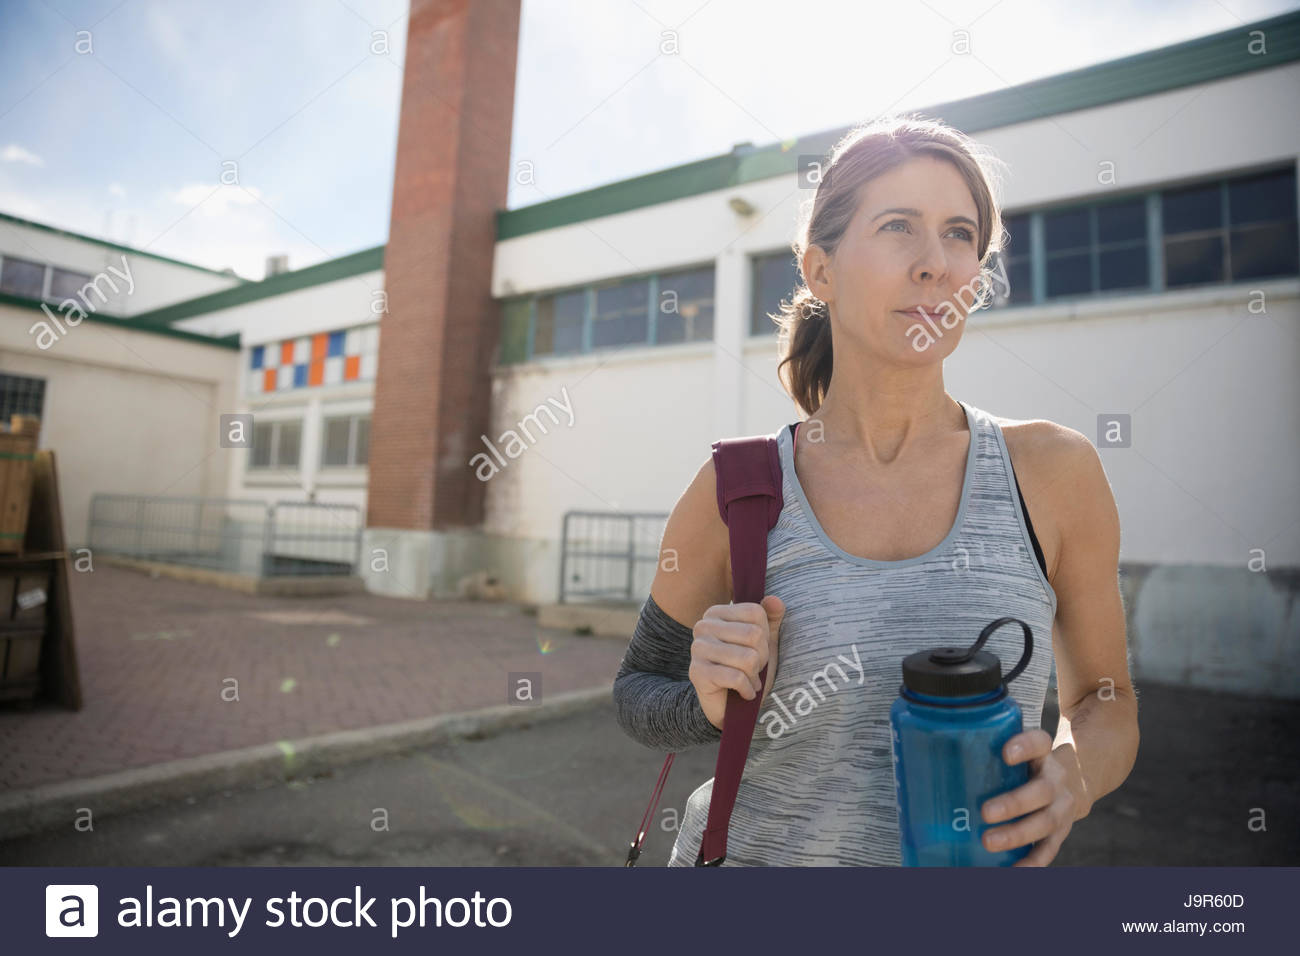 Confident, determined woman with water bottle in parking lot post workout - Stock Image